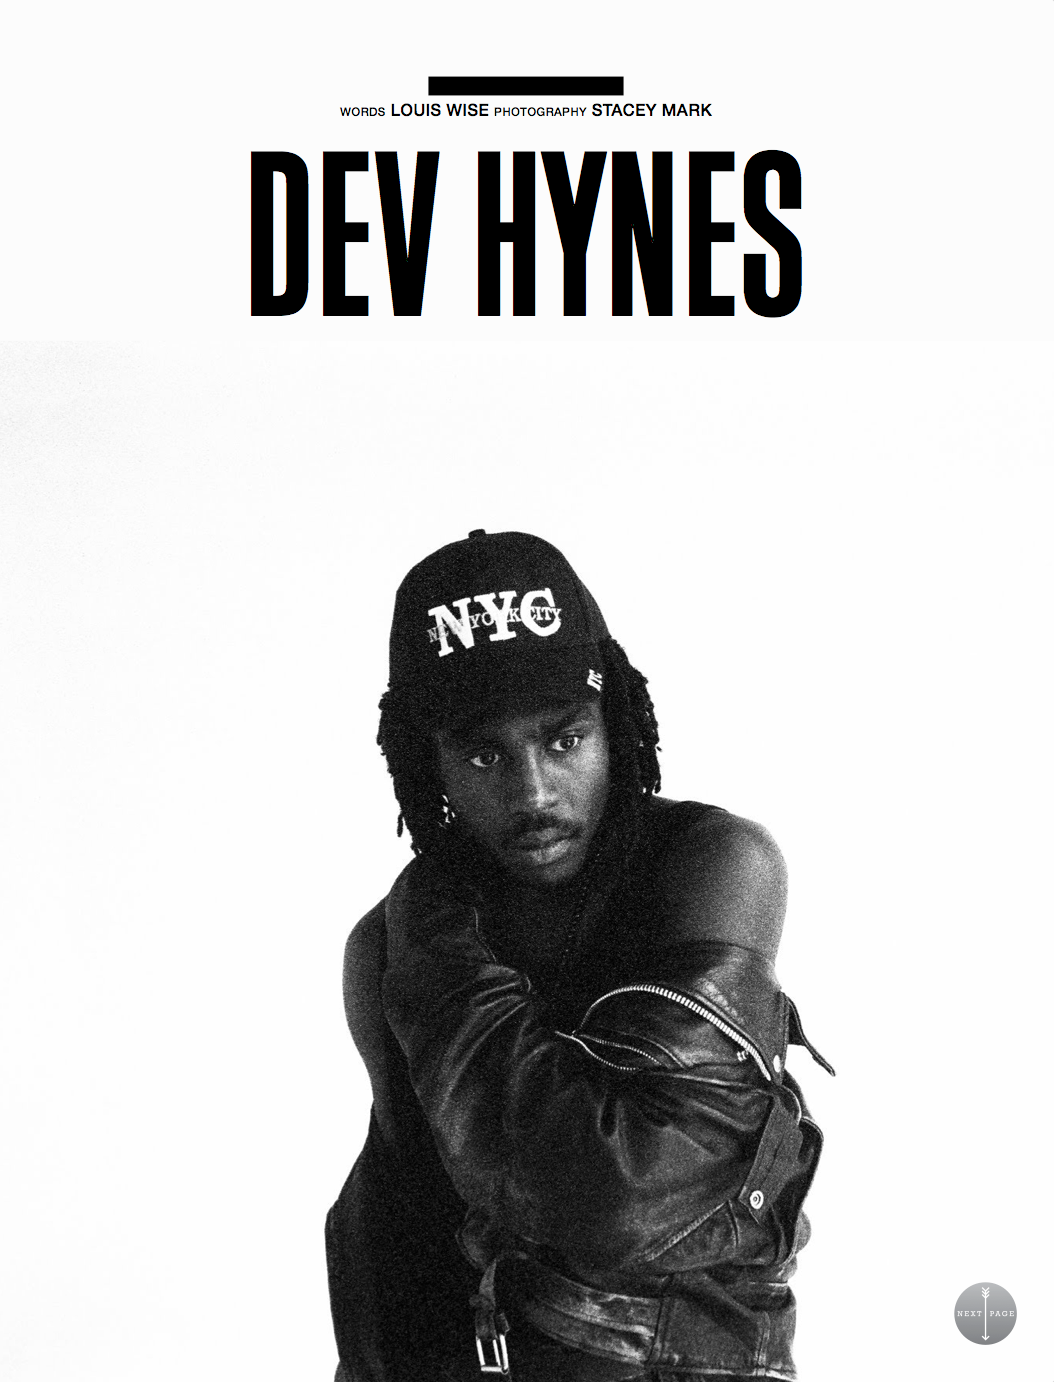 Pop extraordinaire Blood Orange (Dev Hynes) talks about his girlfriend #SamanthaUrbani's impact on his new album, #CupidDeluxe,  his 'Stupid Taste' in Music in the latest issue of SOUNDS. Download it now to read the whole interview and enjoy the interactive feature.  Download the latest issue of SOUNDS for FREE on iPad or iPhone.